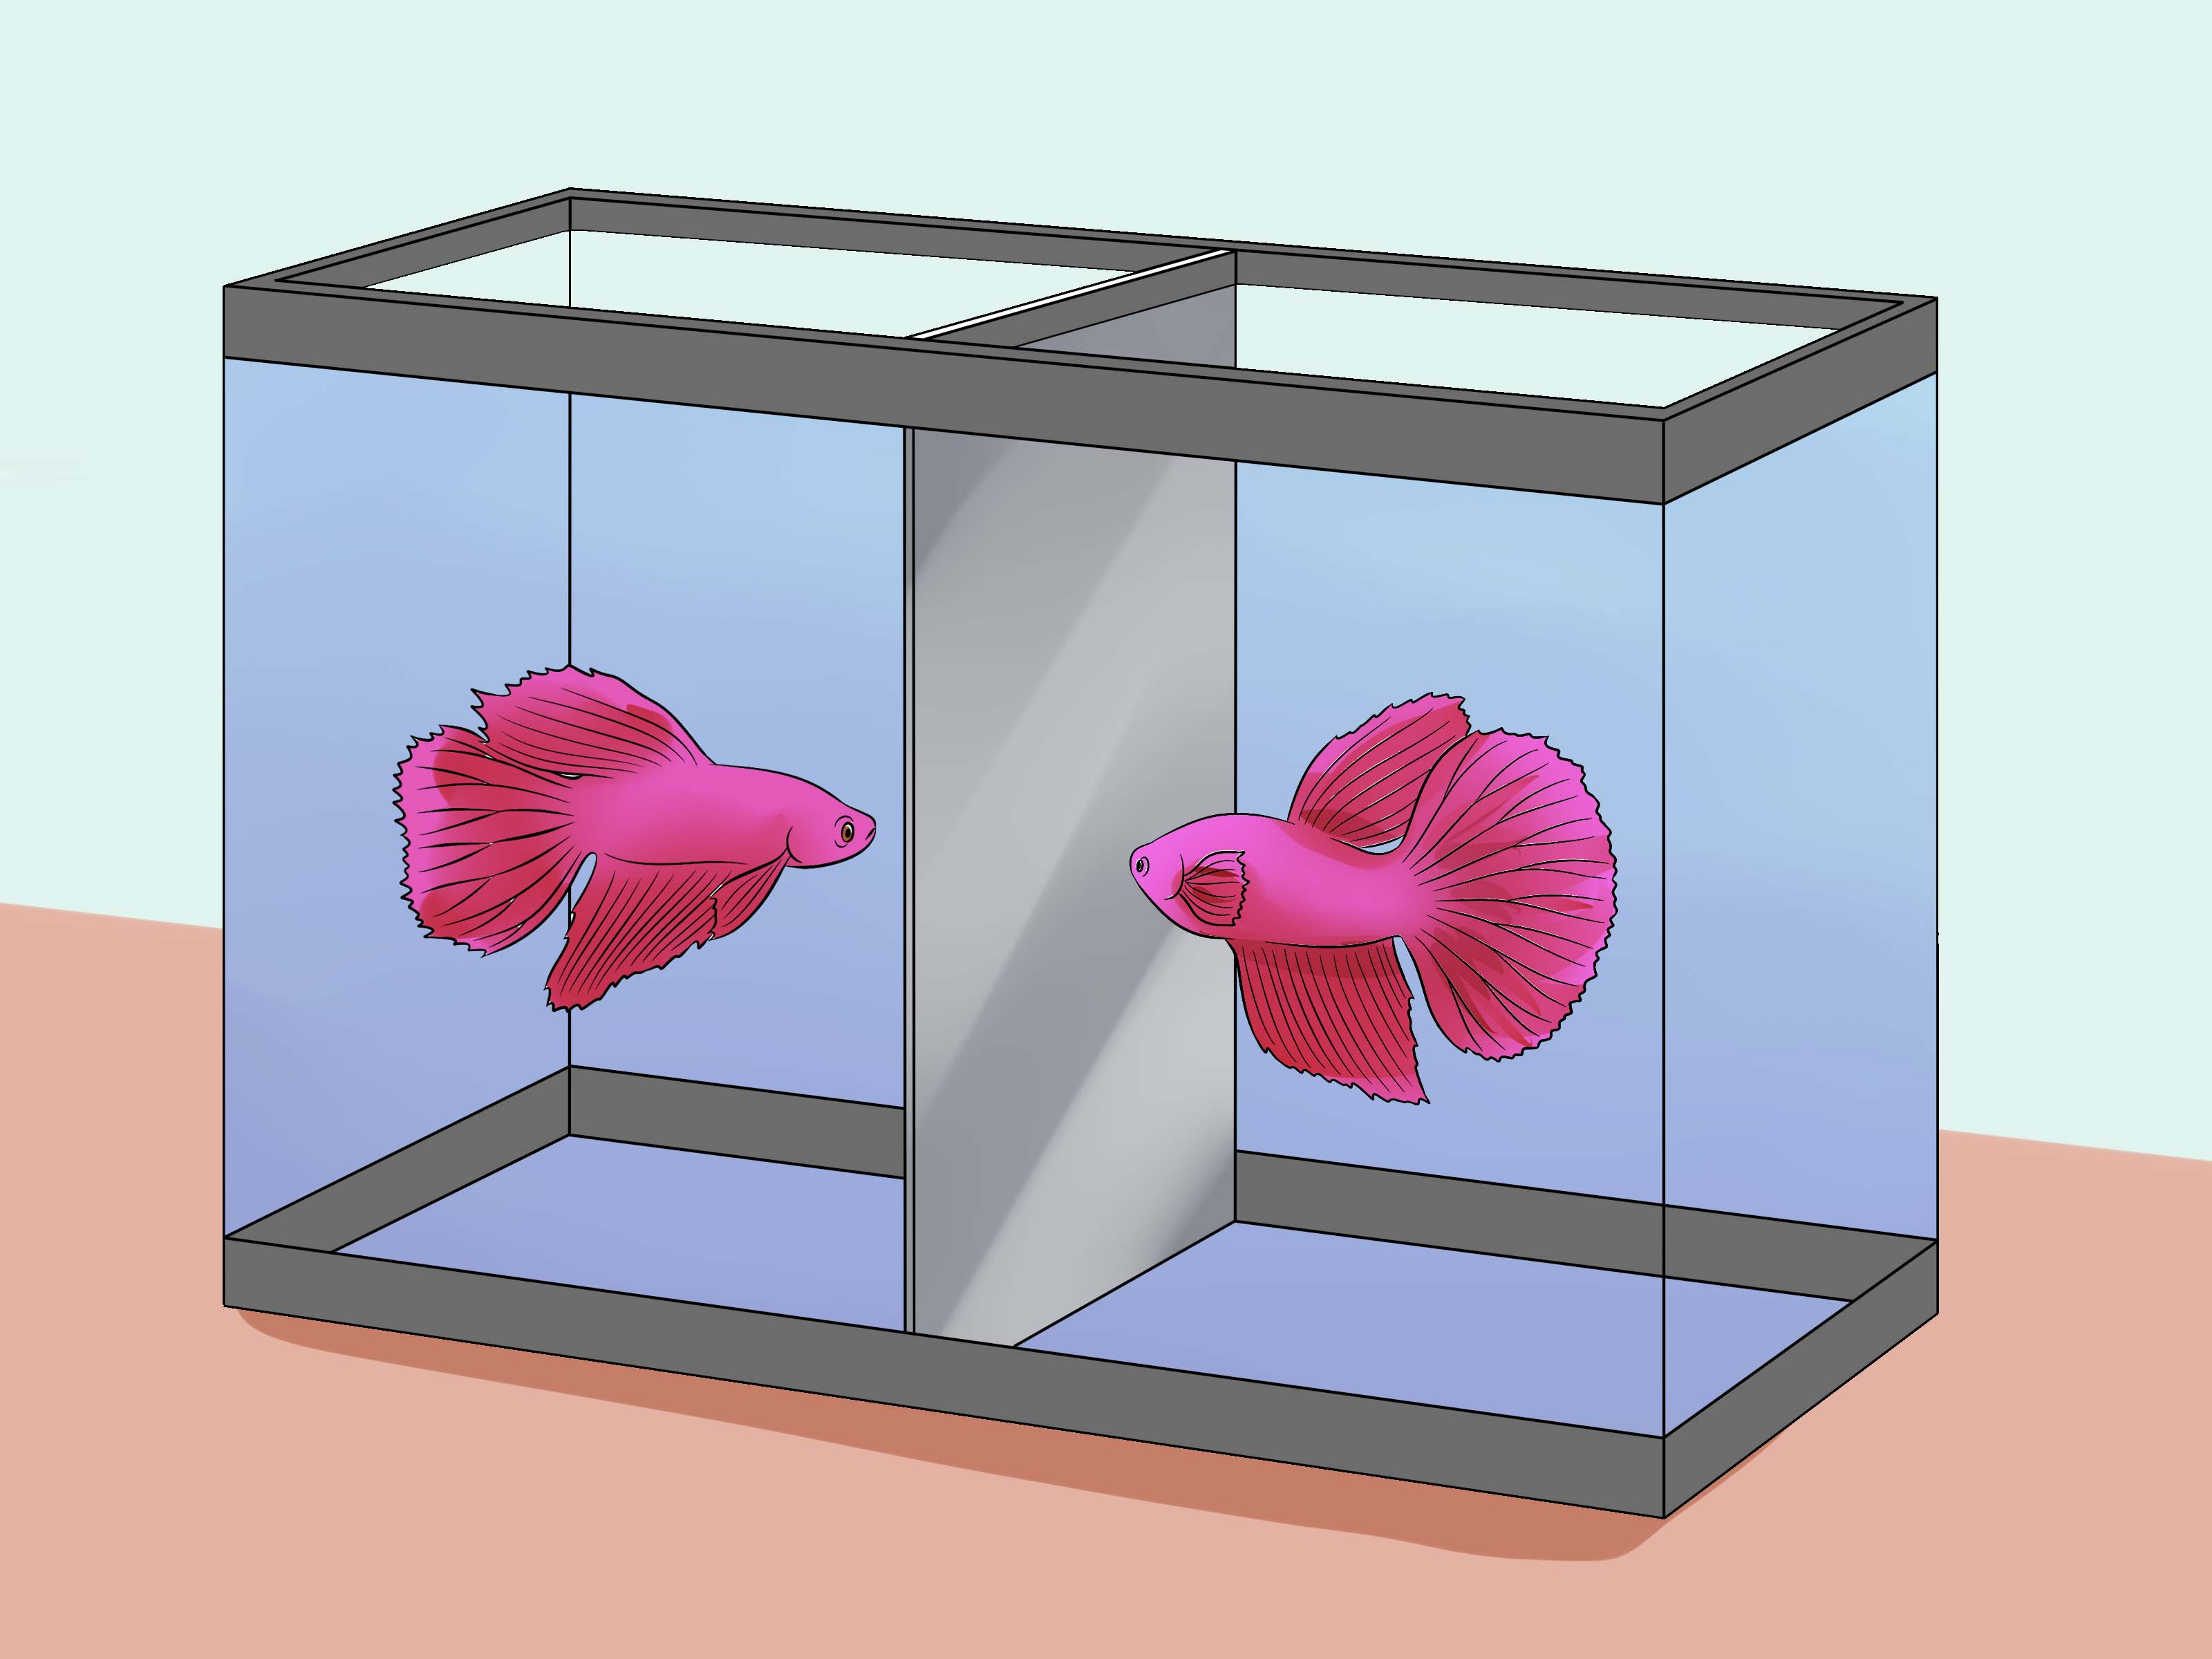 Fullsize Of Betta Fish Lifespan